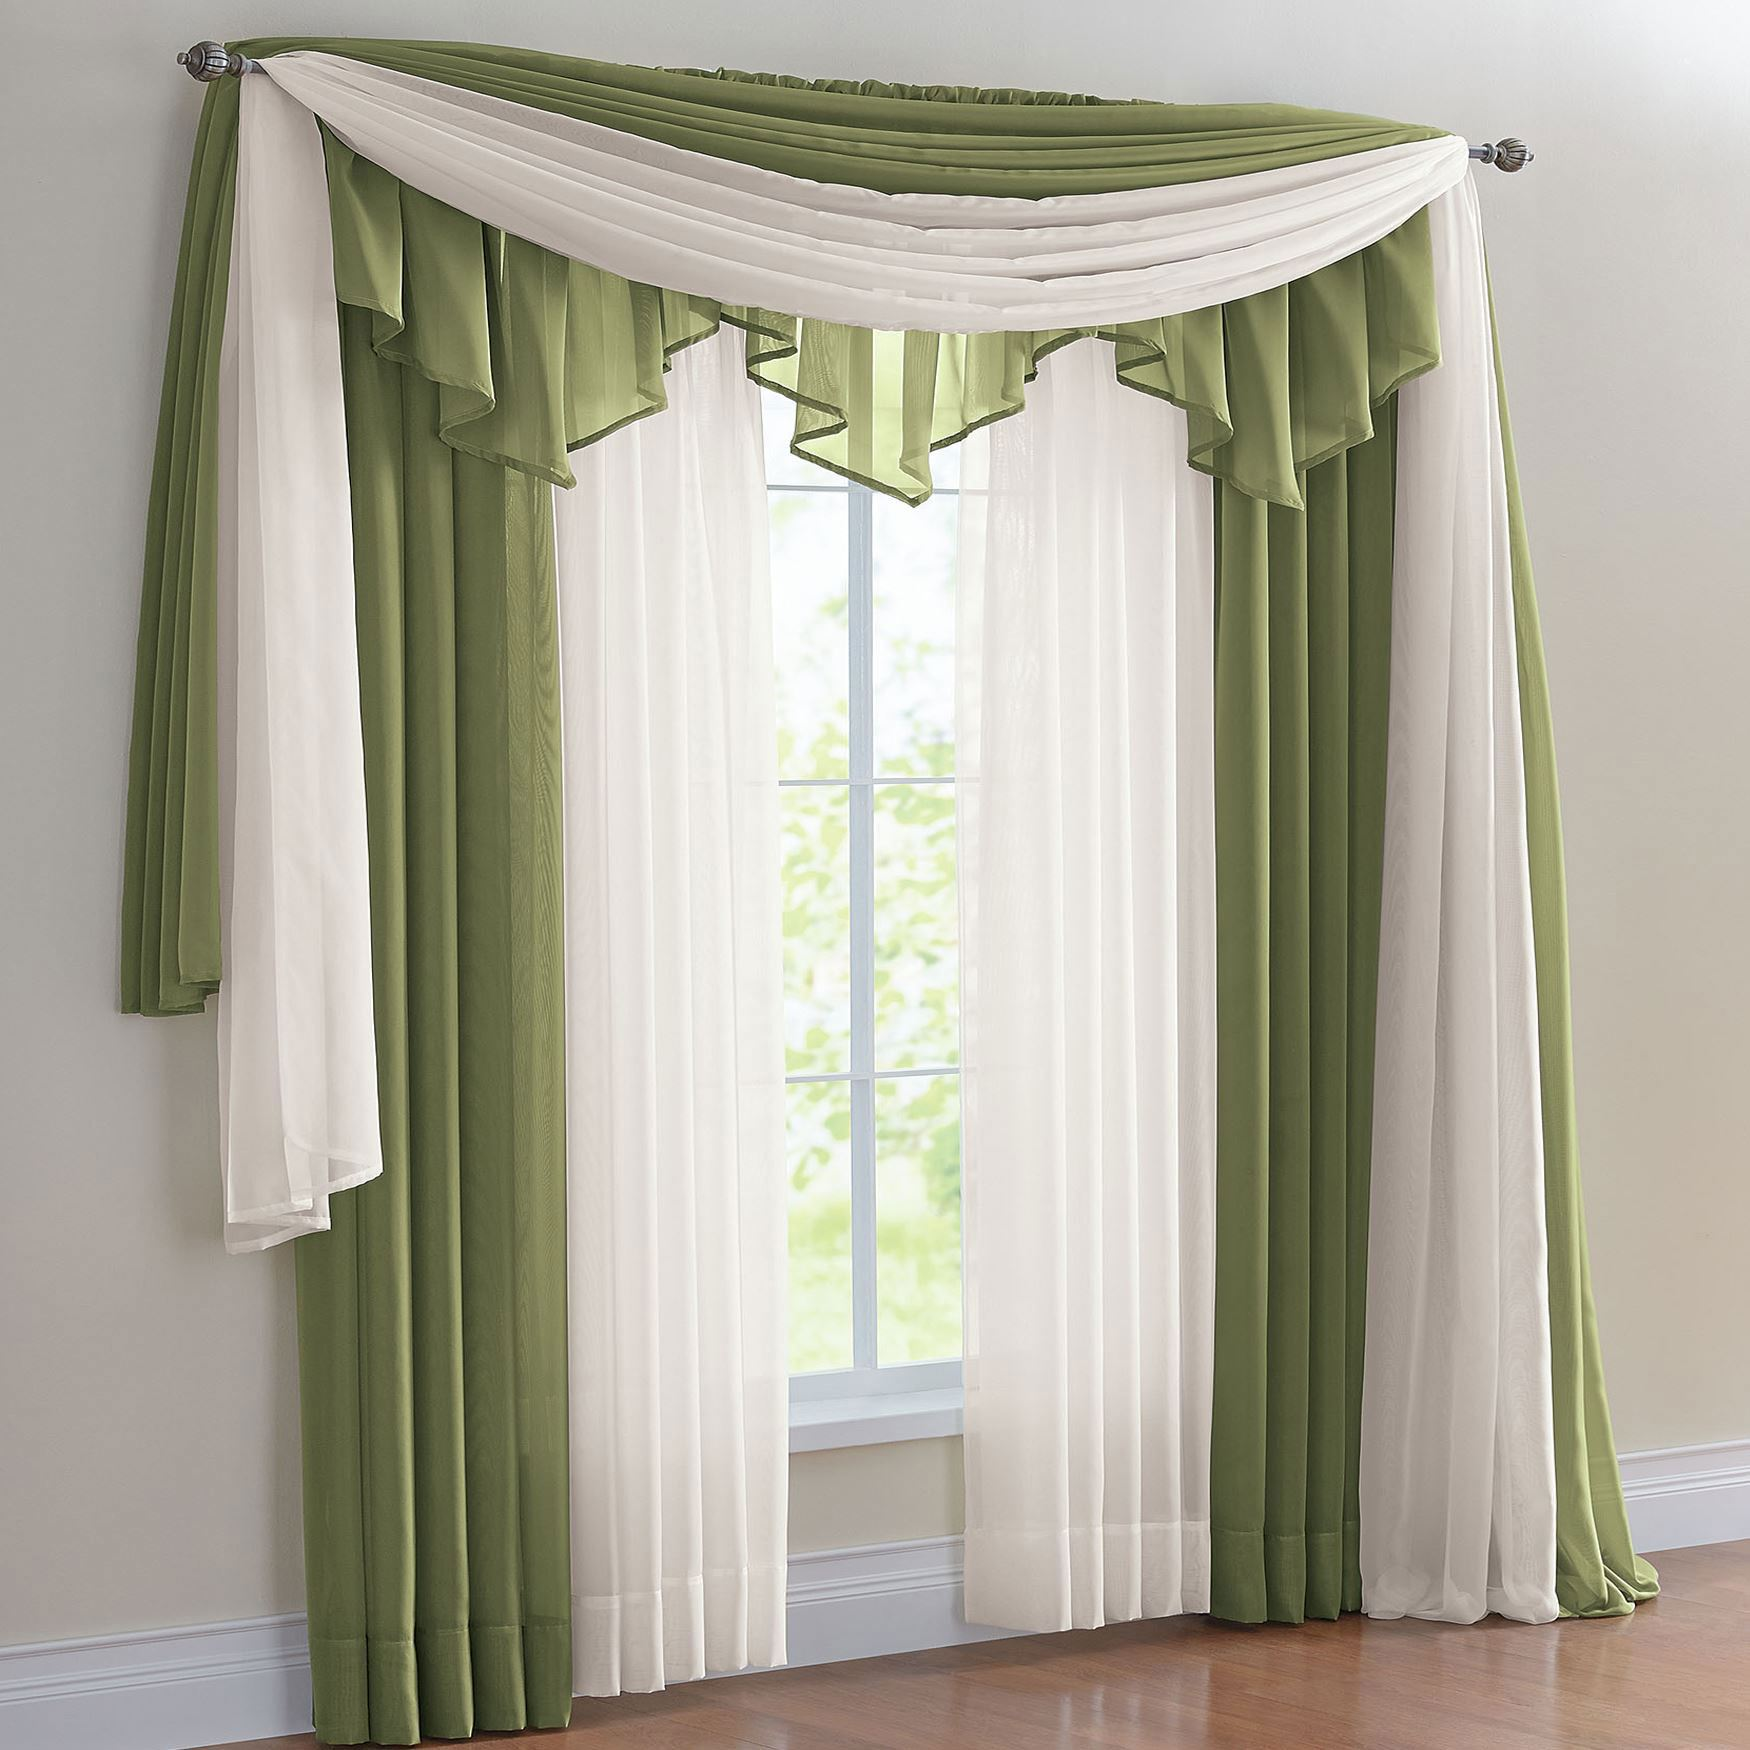 drapes and curtains bh studio® sheer voile ascot valance MYKTLQI